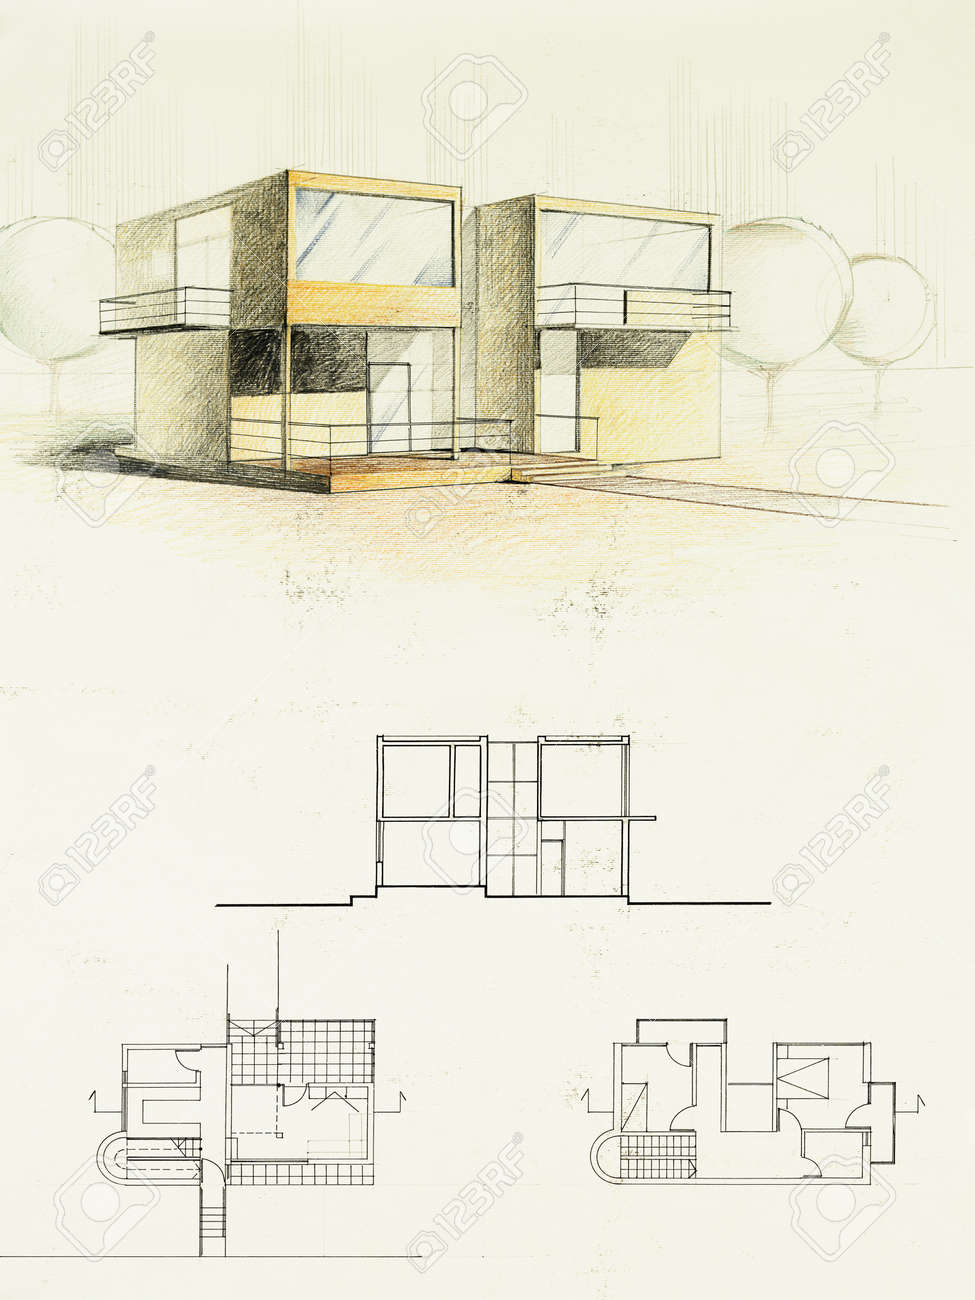 modern home architecture blueprints. Perfect Blueprints Colored Architectural Blueprint Of Modern House Drawn By Hand Stock Photo   13342737 To Modern Home Architecture Blueprints